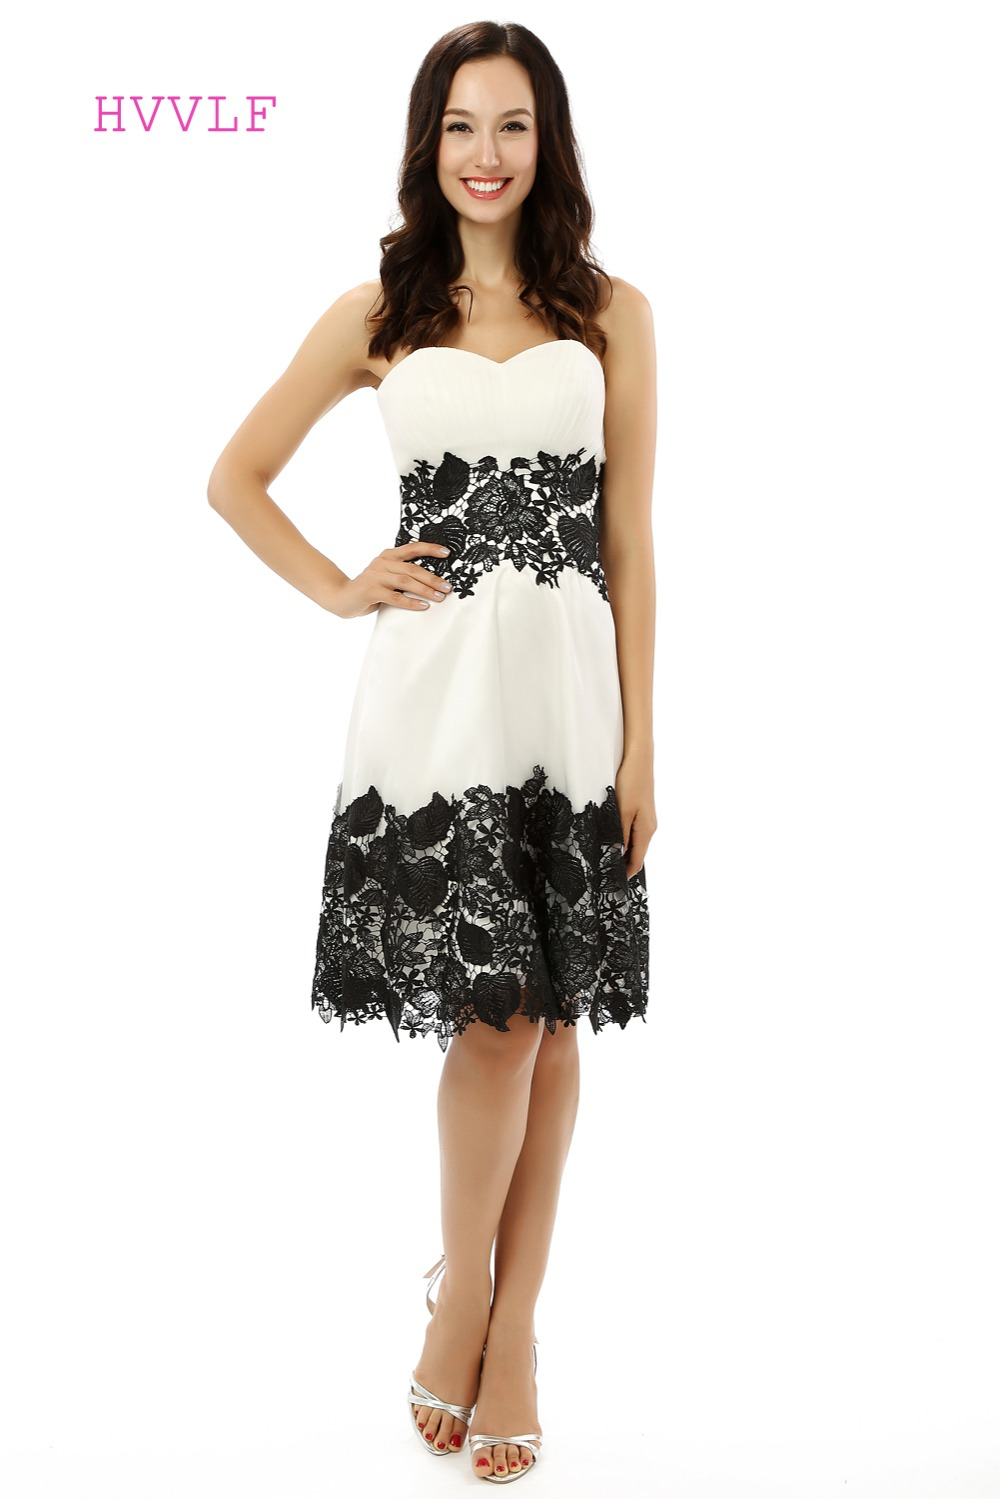 White Black Homecoming Dresses A-line Sweetheart Satin Lace Knee Length Sparkly Sweet 16 Cocktail Dresses 2019